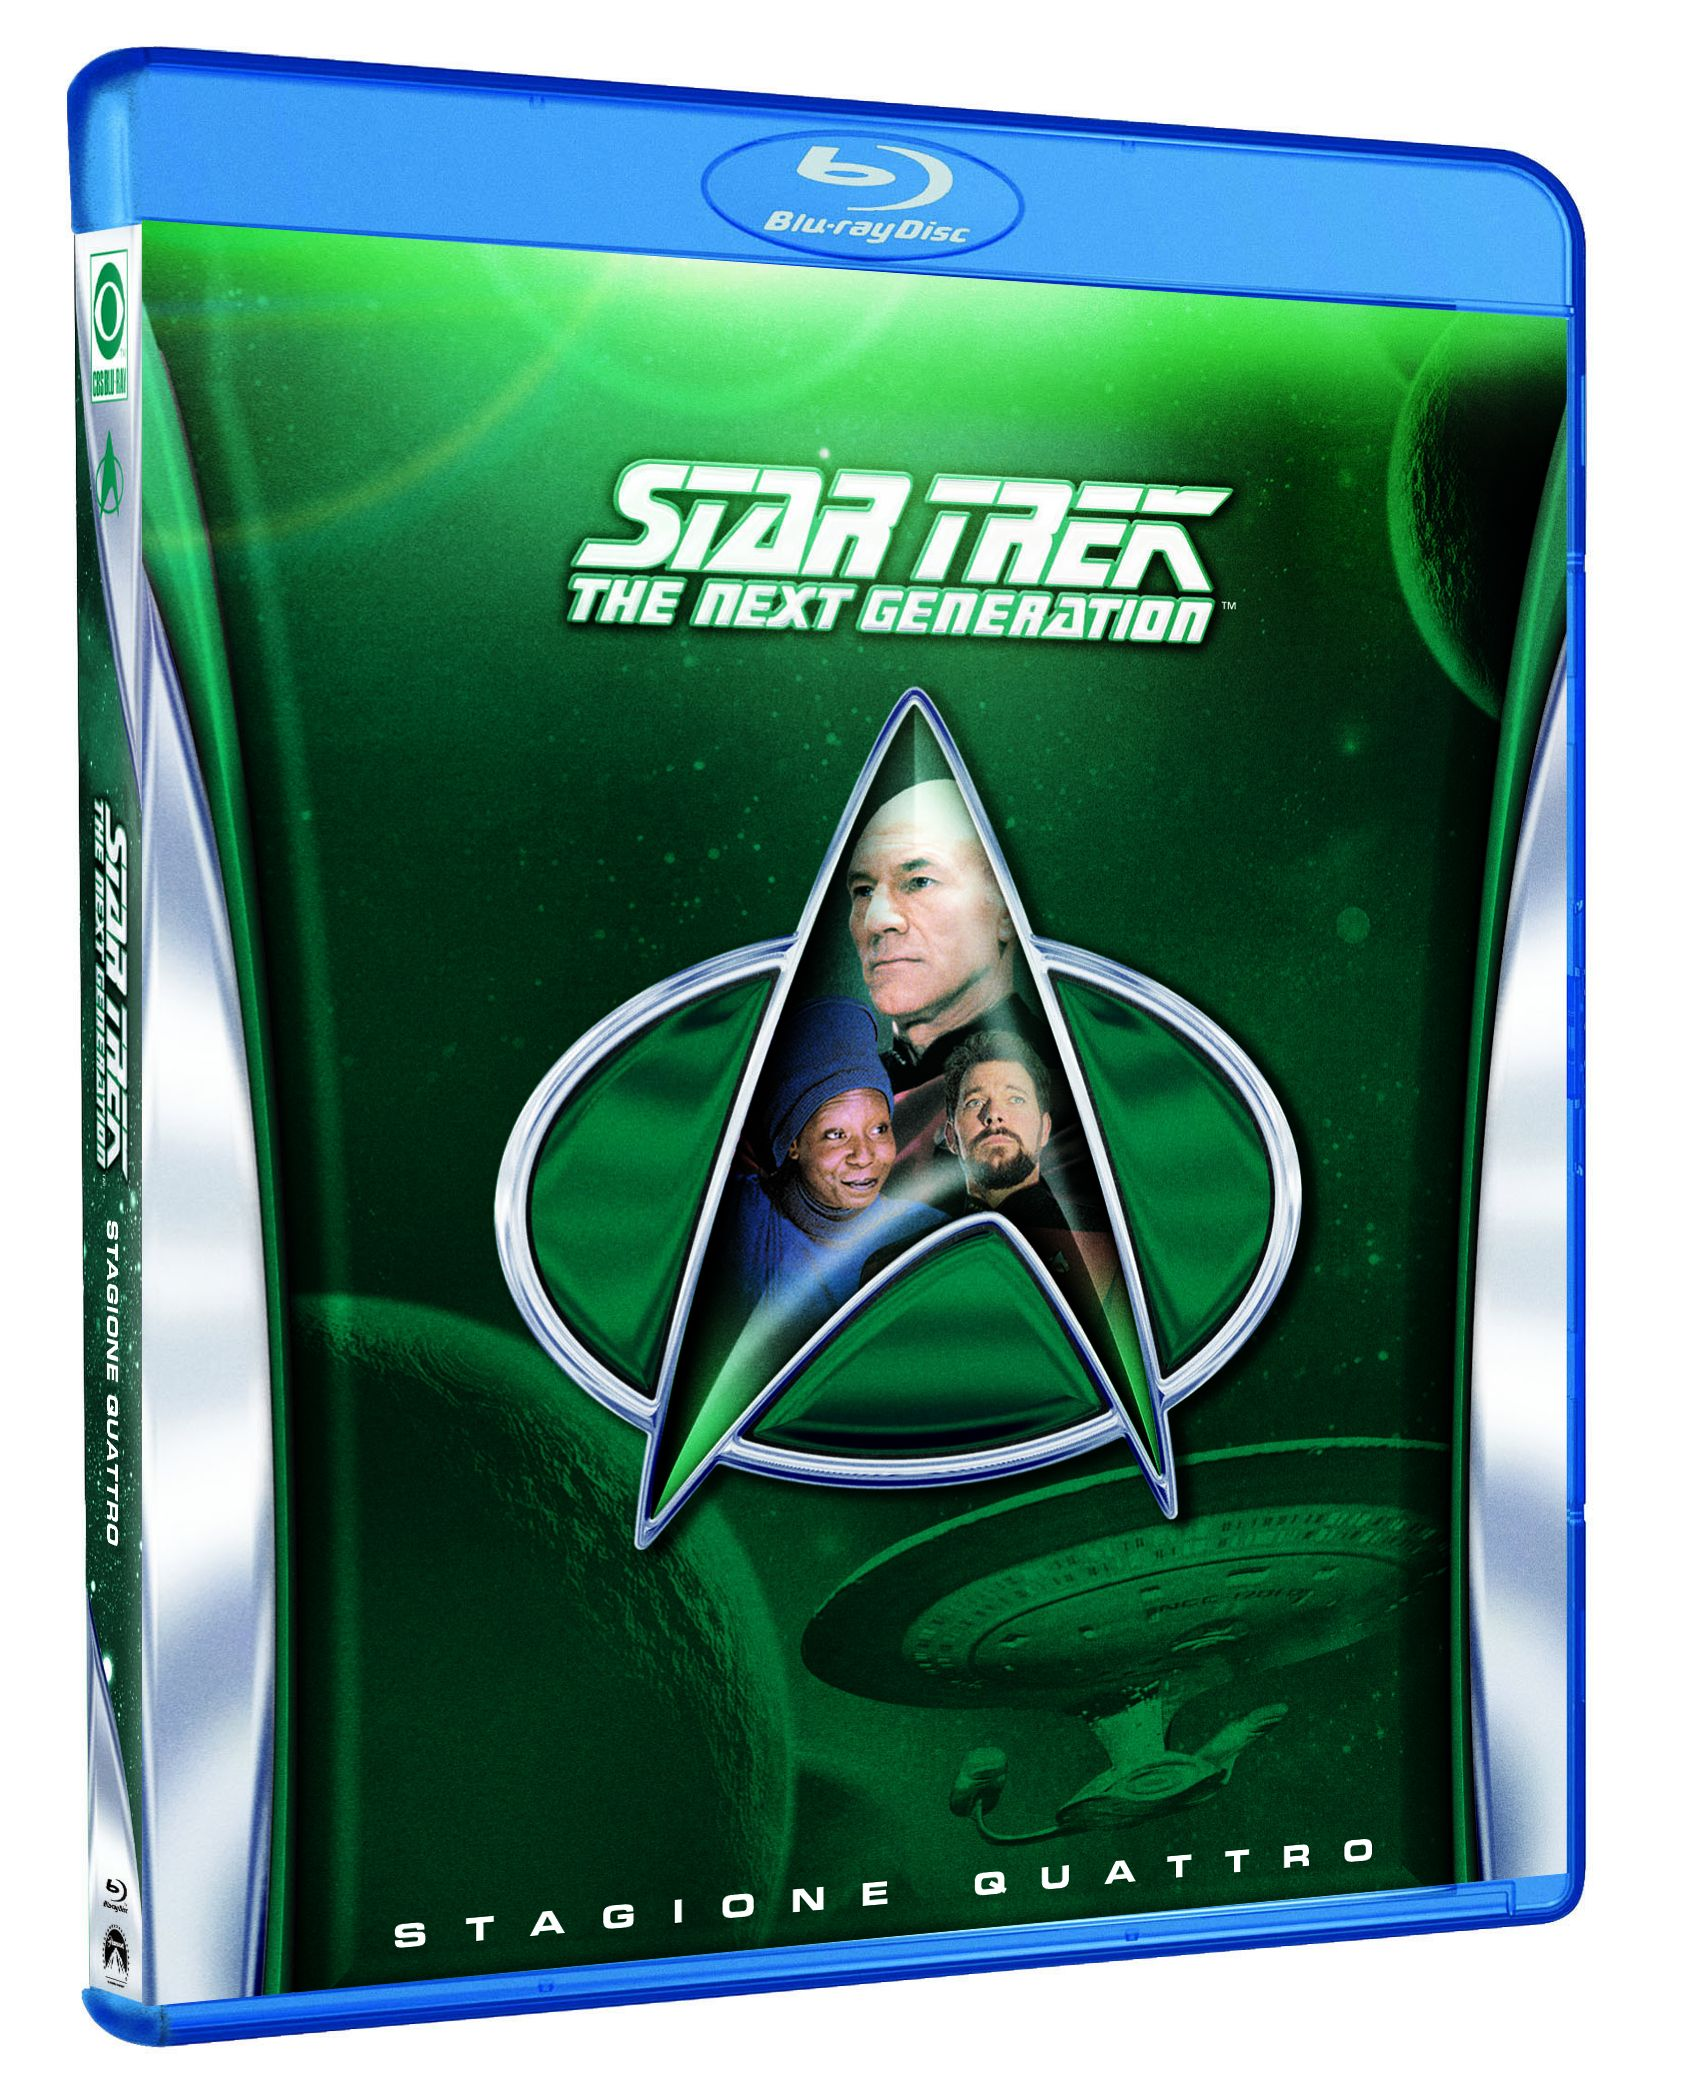 Star Trek the next generation stagione 4 blu-ray